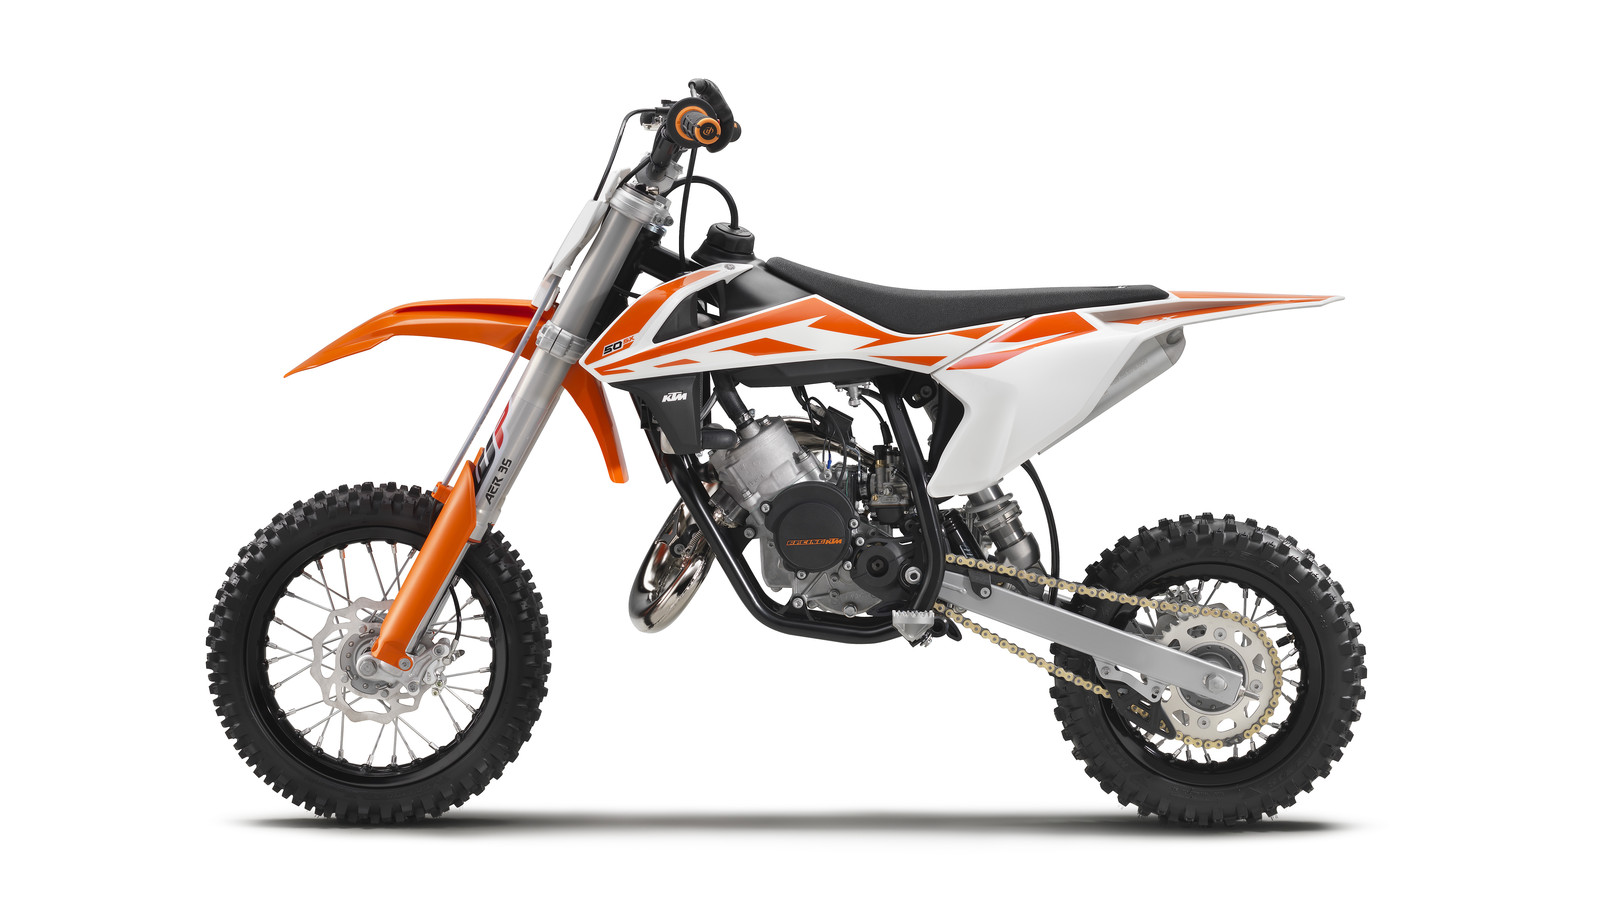 2017 KTM 50 SX - First Look: 2017 KTM 50 SX, 65 SX, and 85 SX - Motocross Pictures - Vital MX